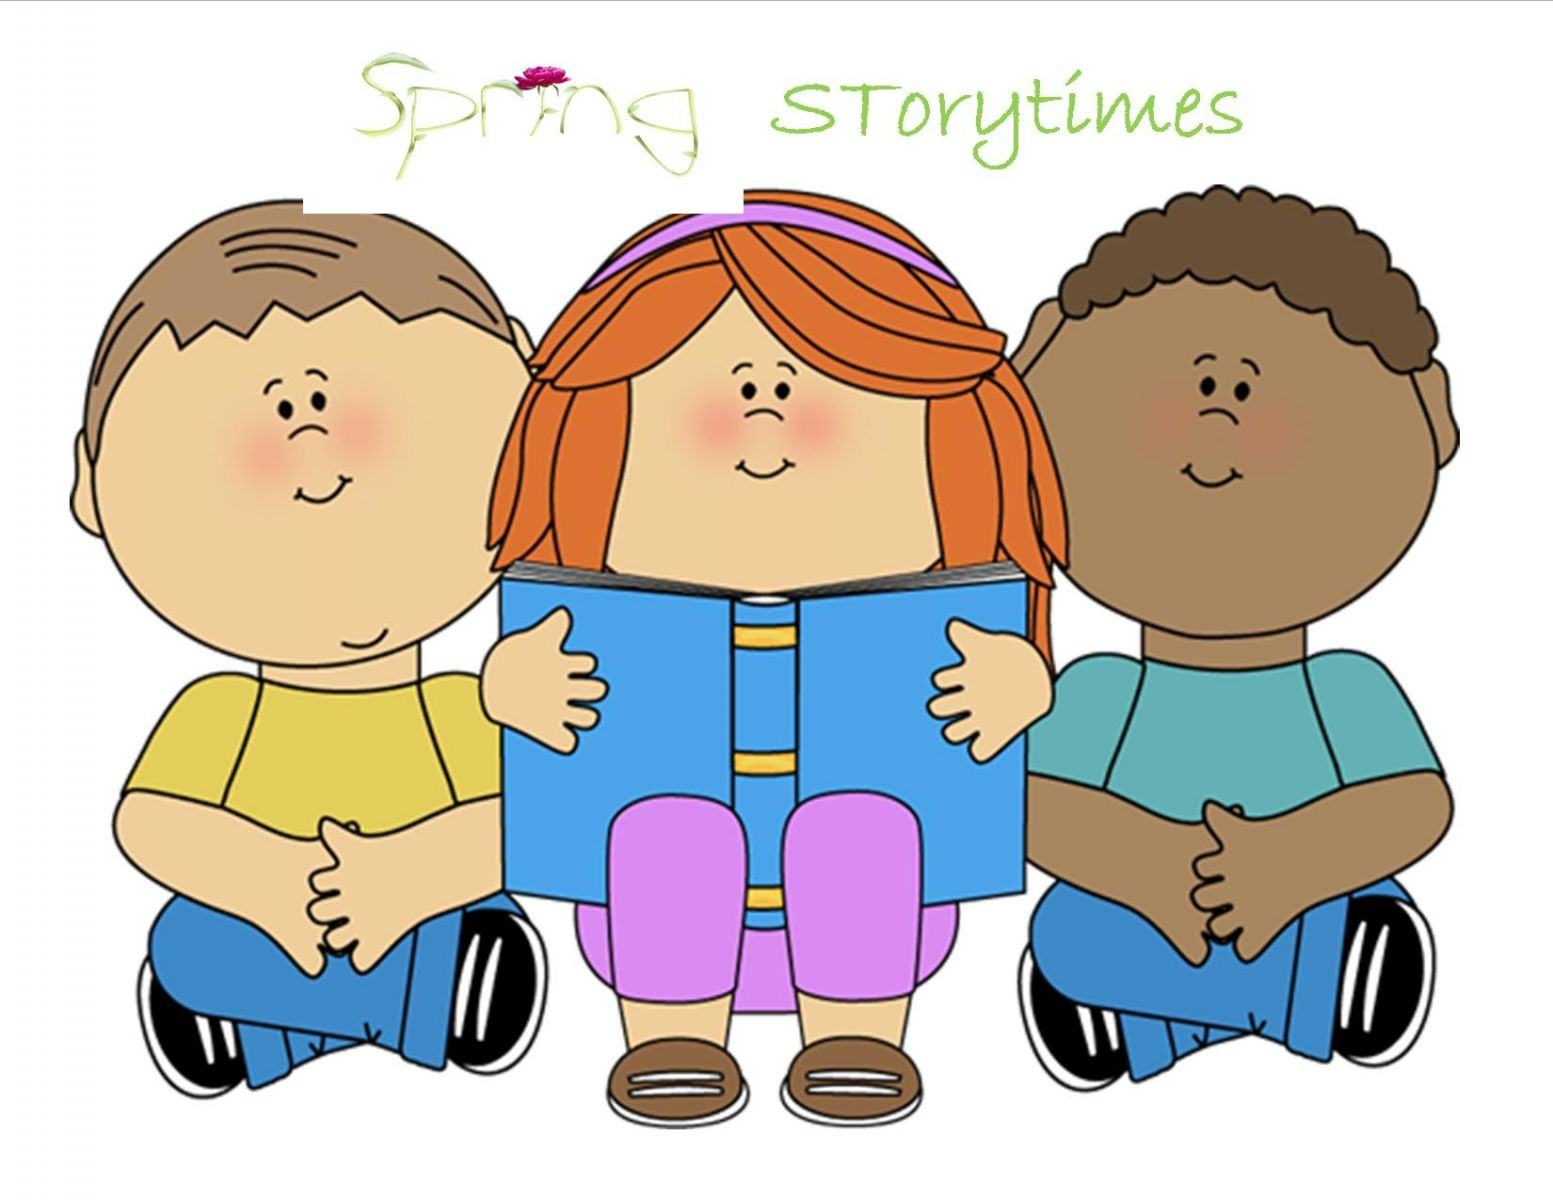 Story time cliparts vector freeuse download Free Preschool Storytime Cliparts, Download Free Clip Art ... vector freeuse download